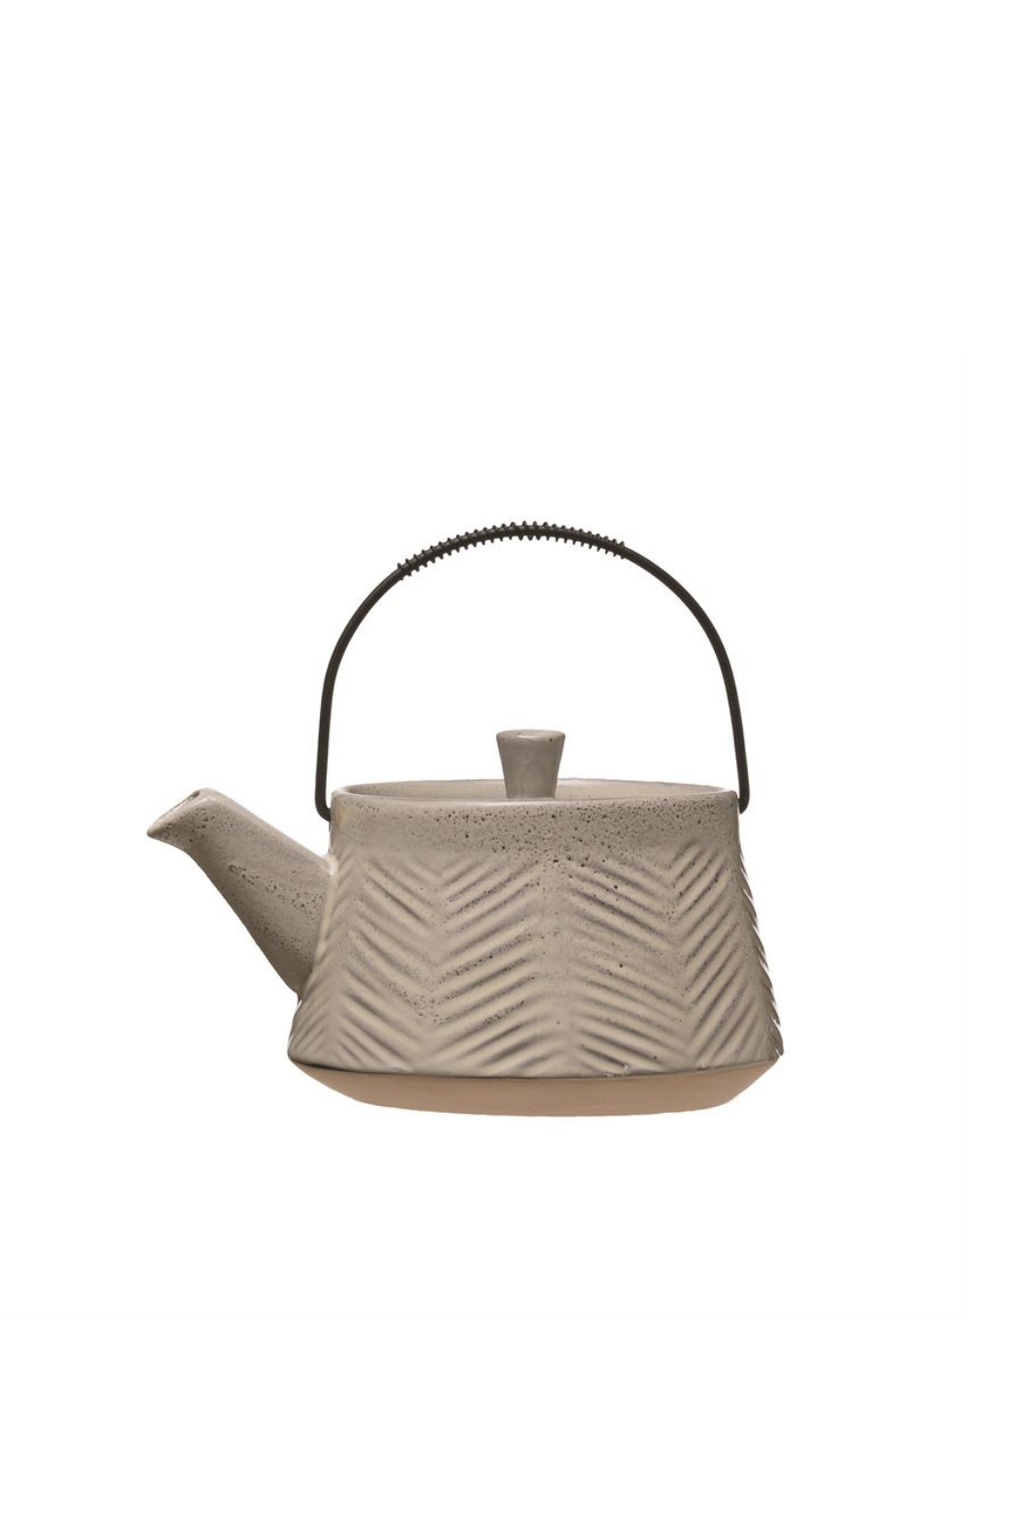 Bloomingville Stoneware Teapot with Metal Strainer